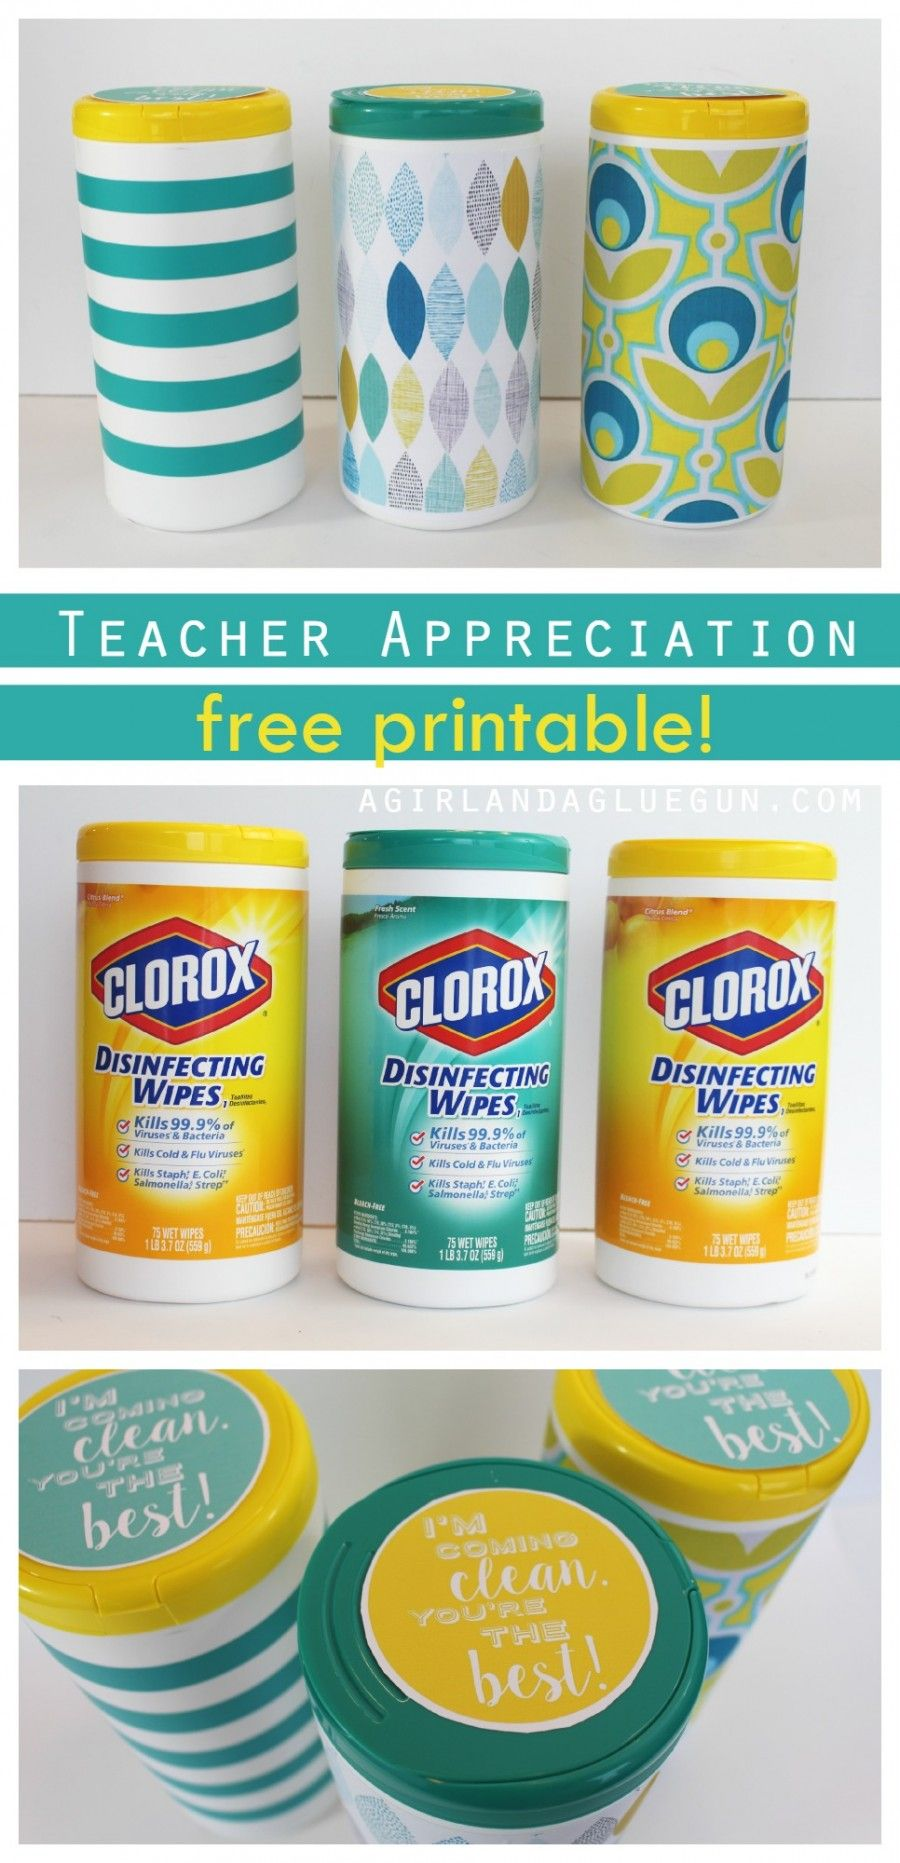 Teacher Appreciation Free Printable For Clorox Wipes